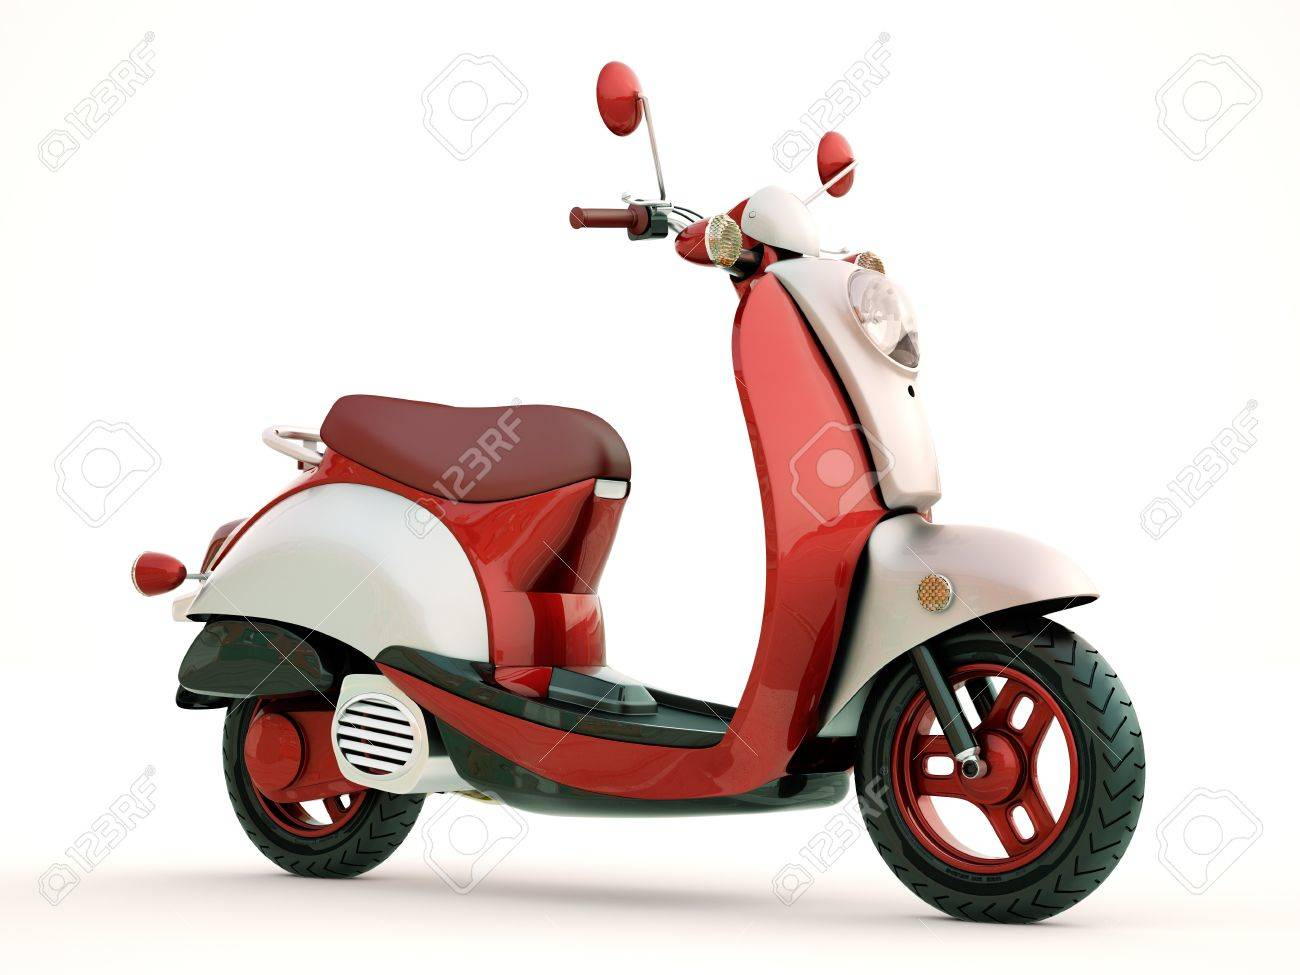 Modern classic scooter on a light background - 21296421